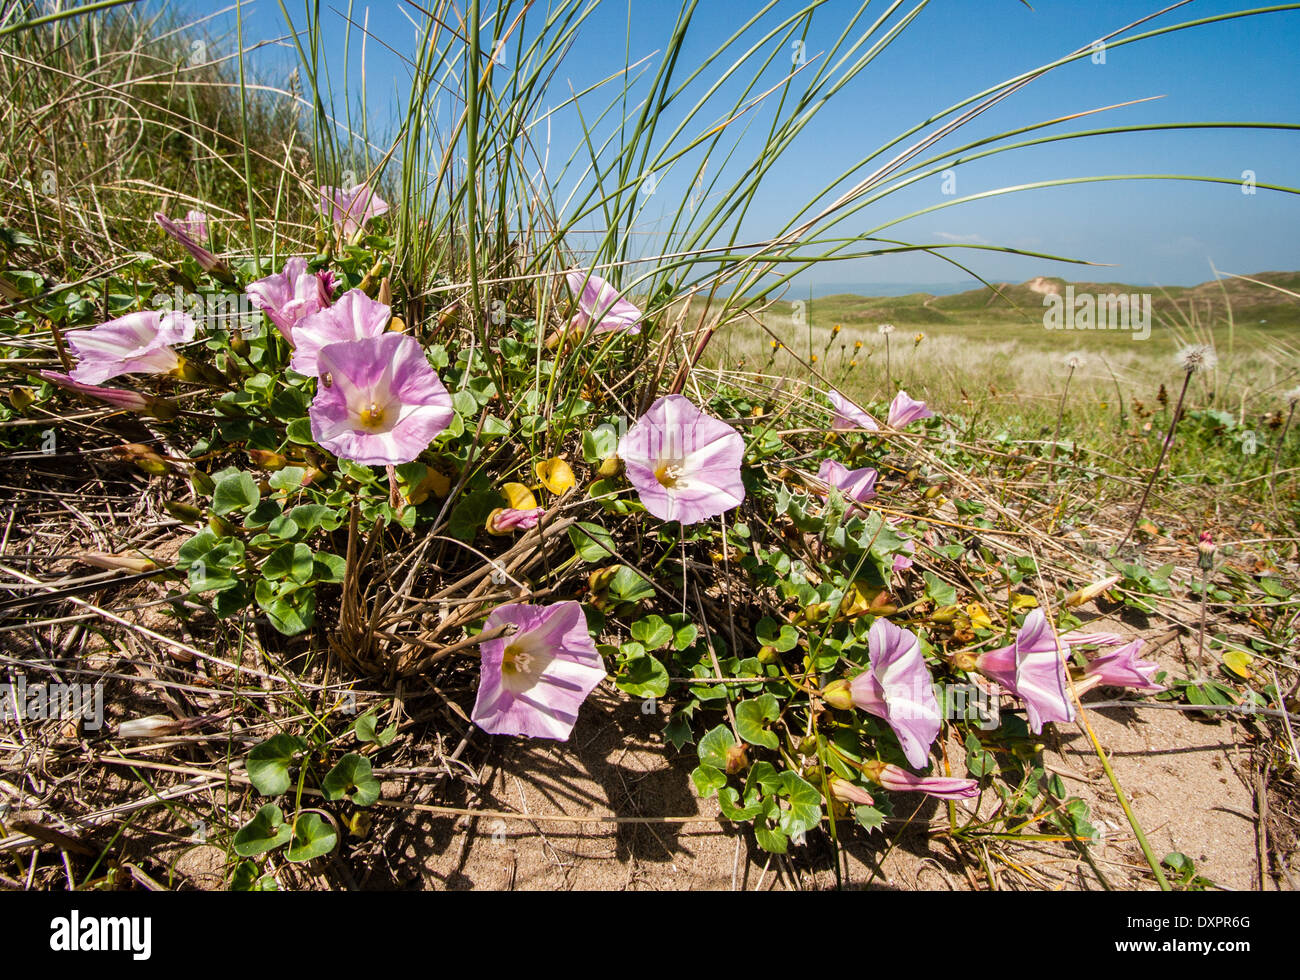 Sea Bindweed Convolvulus soldanella growing in dry sand dunes at Kenfig Burrows on the South Wales coast UK - Stock Image